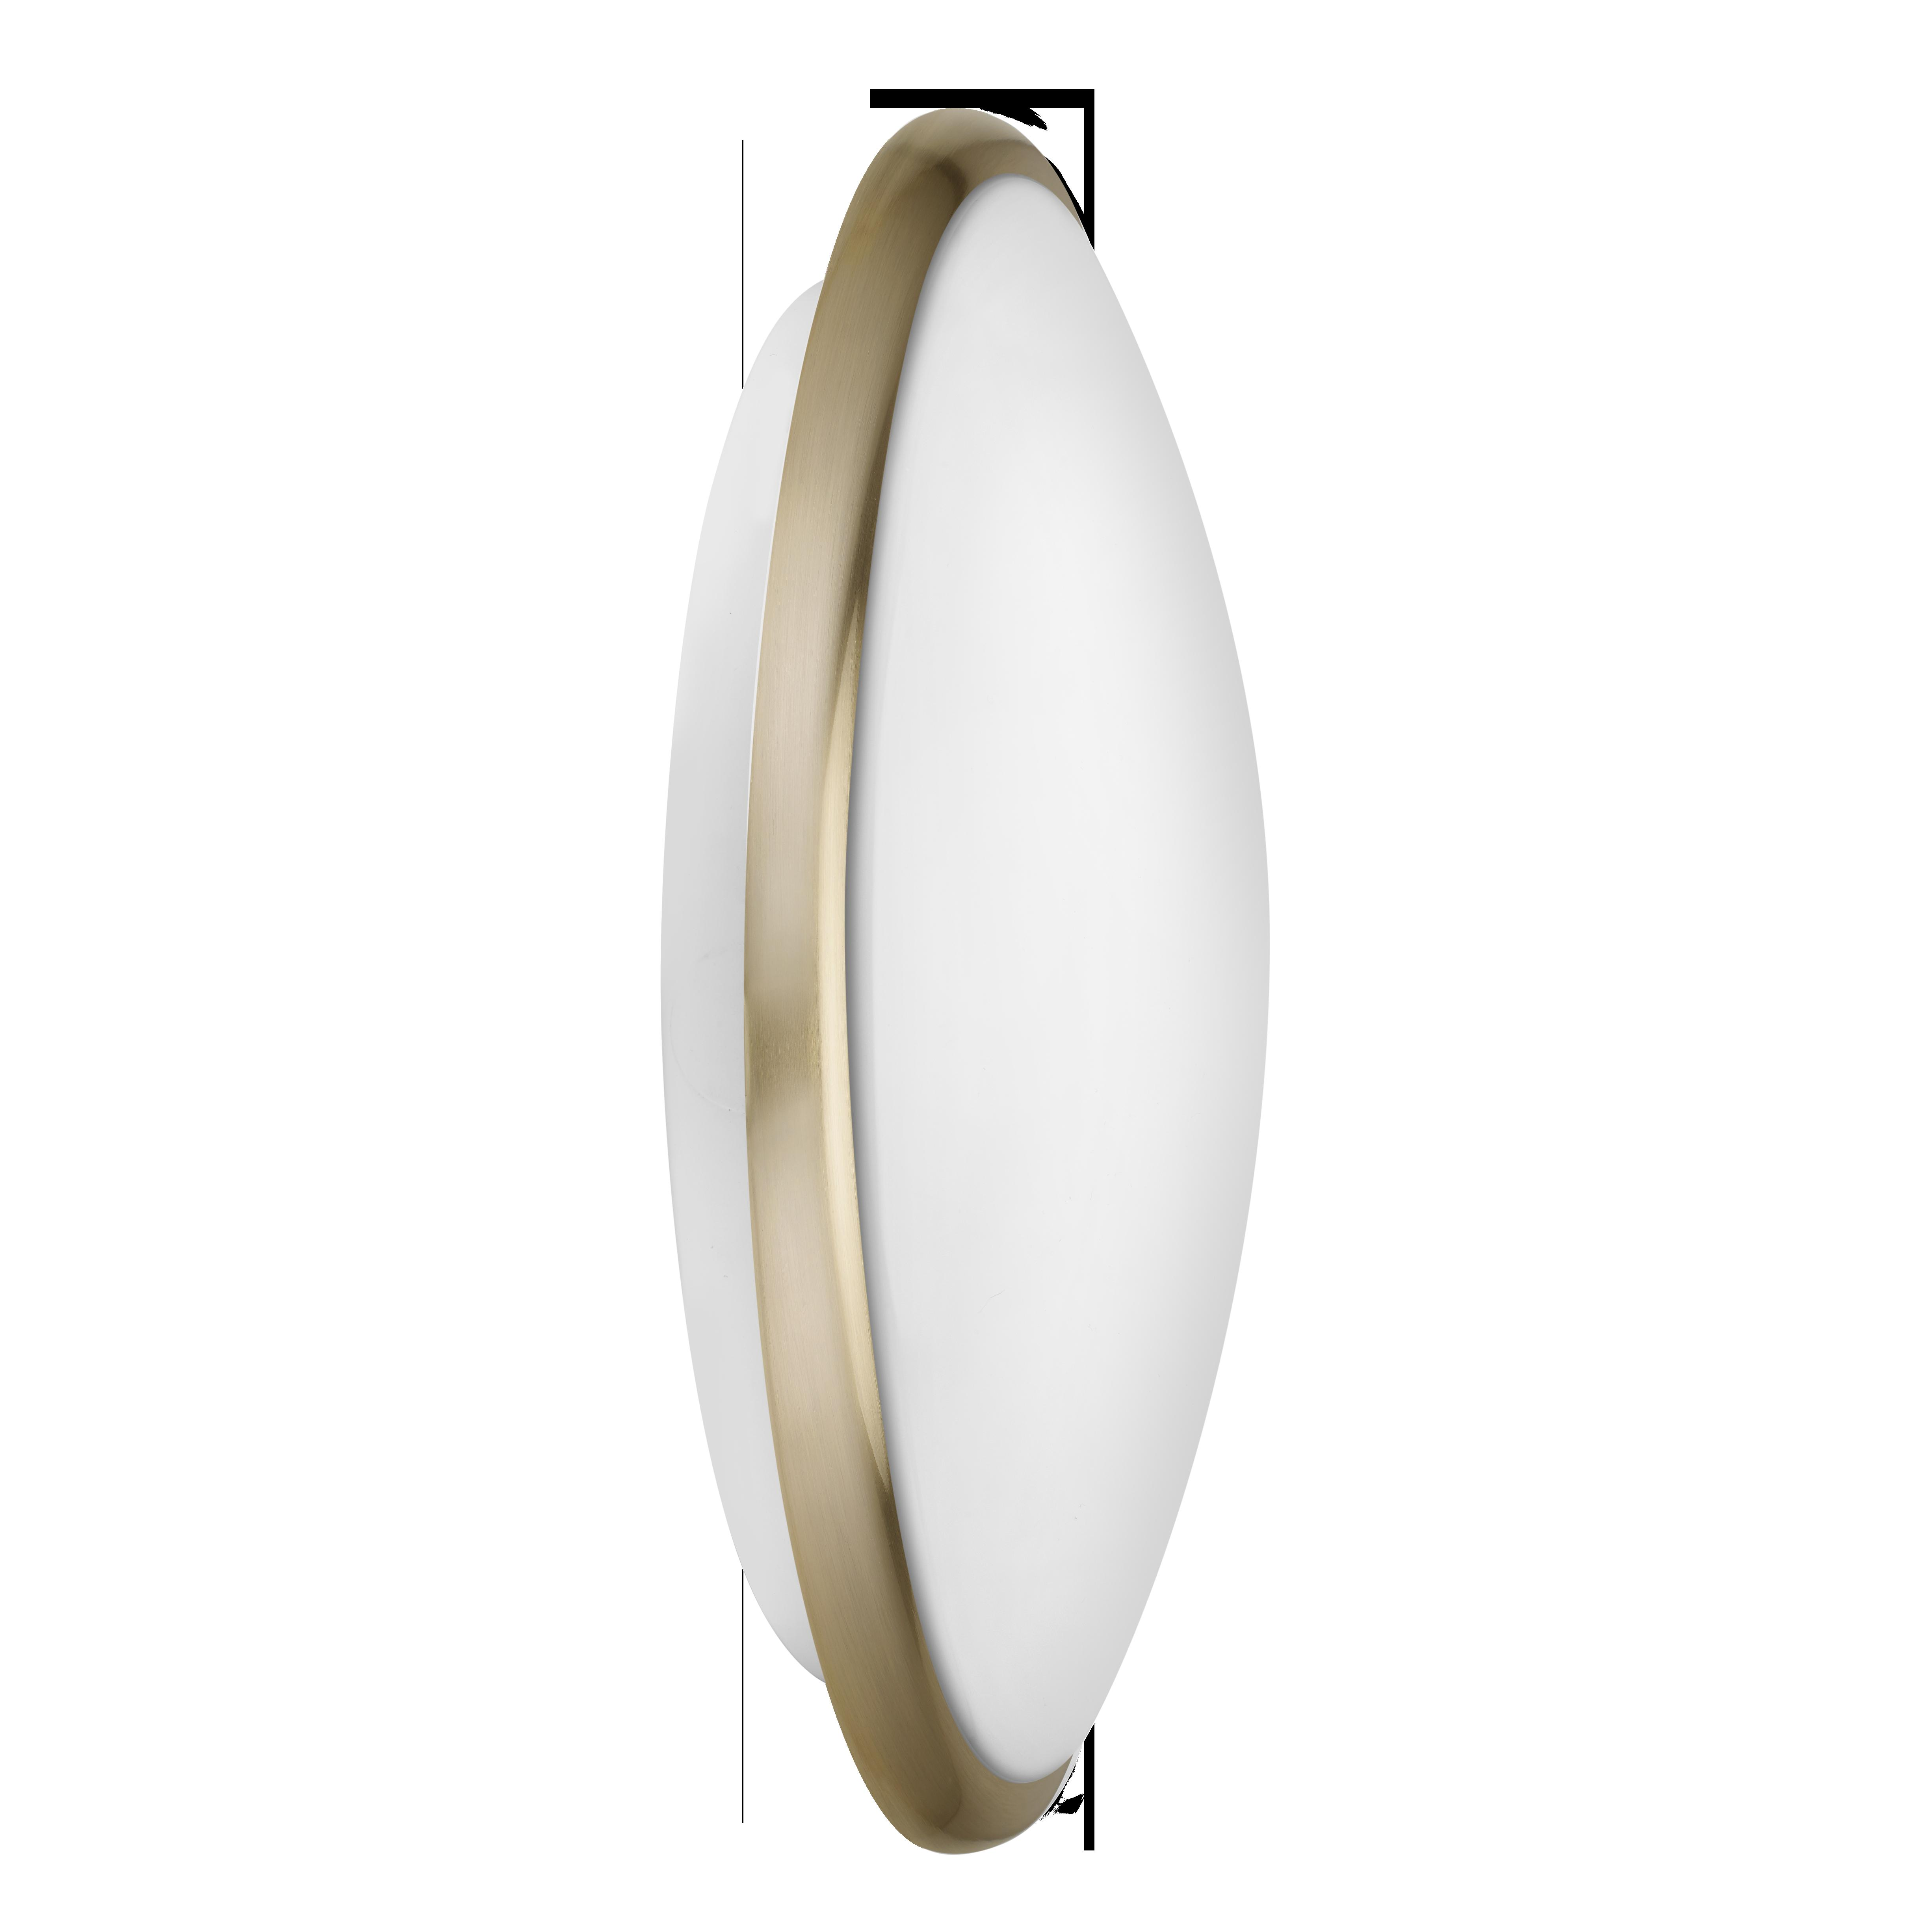 DECO GRANDE TRIM ANTIQUE BRASS TO FIT DECO GRANDE LED FITTING